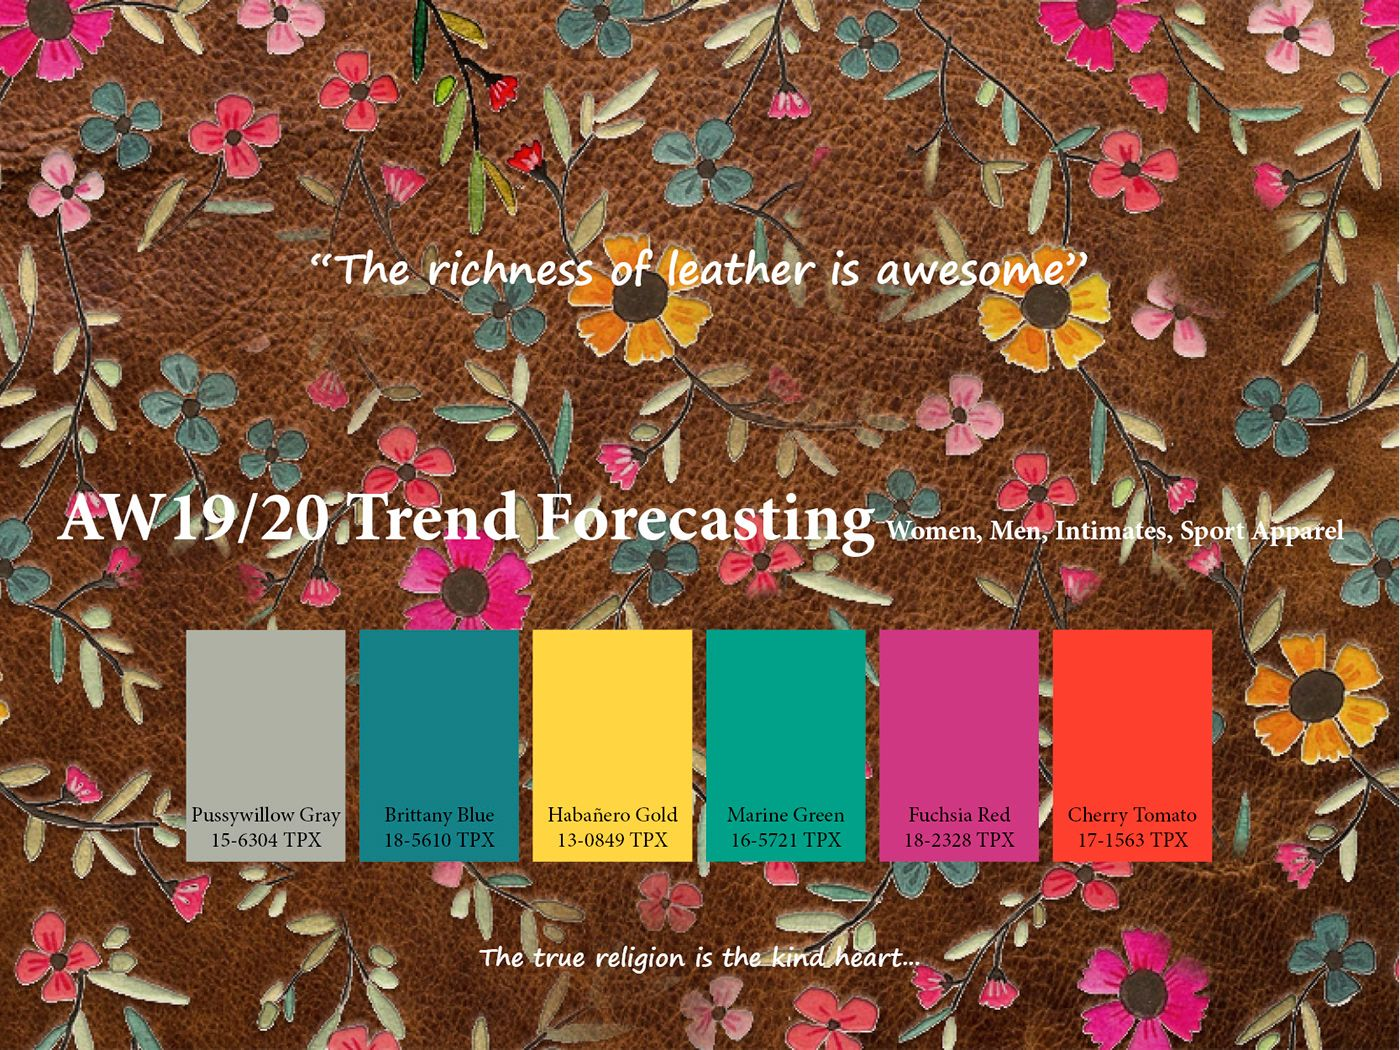 AutumnWinter 2019/2020 trend forecasting is A TREND/COLOR ...